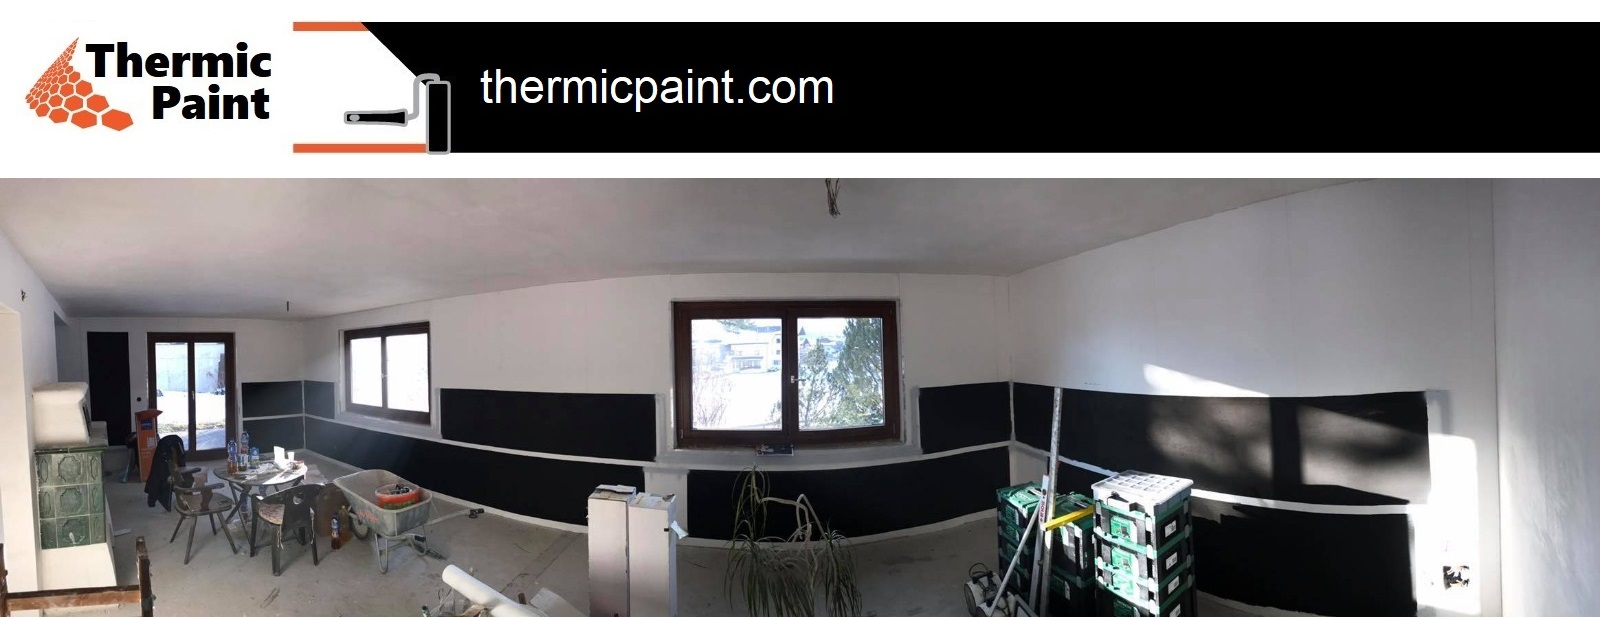 Thermic coating systems Ltd.